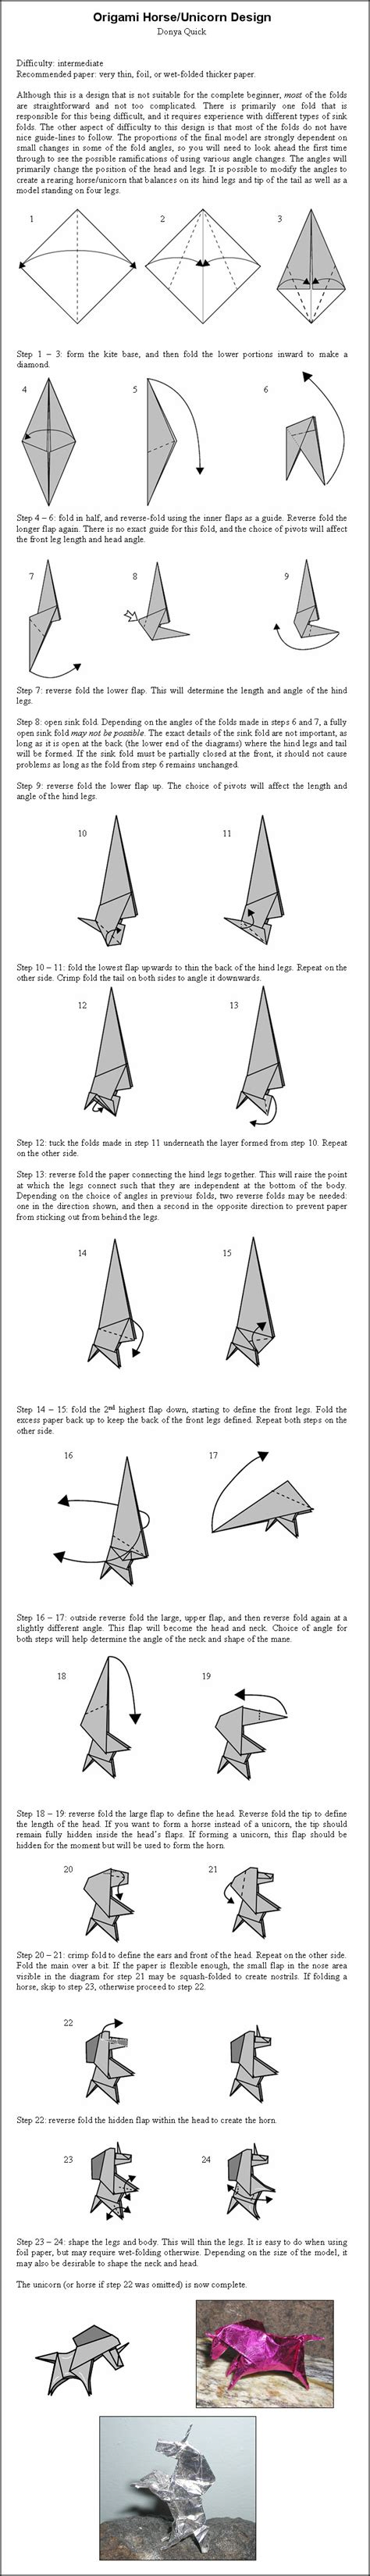 How To Make An Origami Unicorn - origami unicorn by donyaquick on deviantart